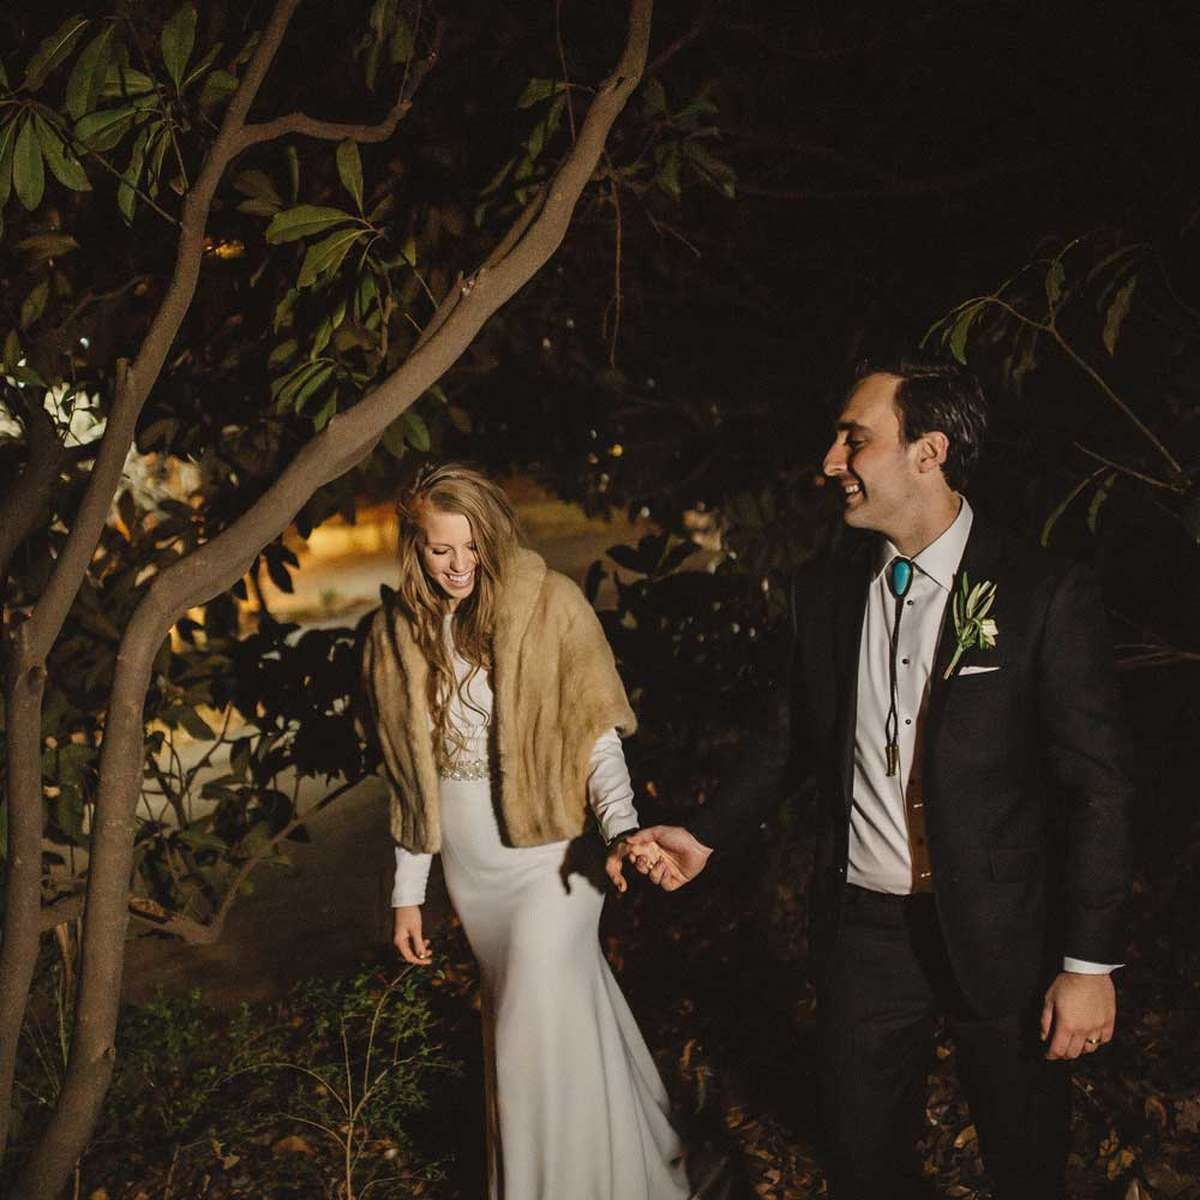 organic and elegant wedding with natural theme in winter